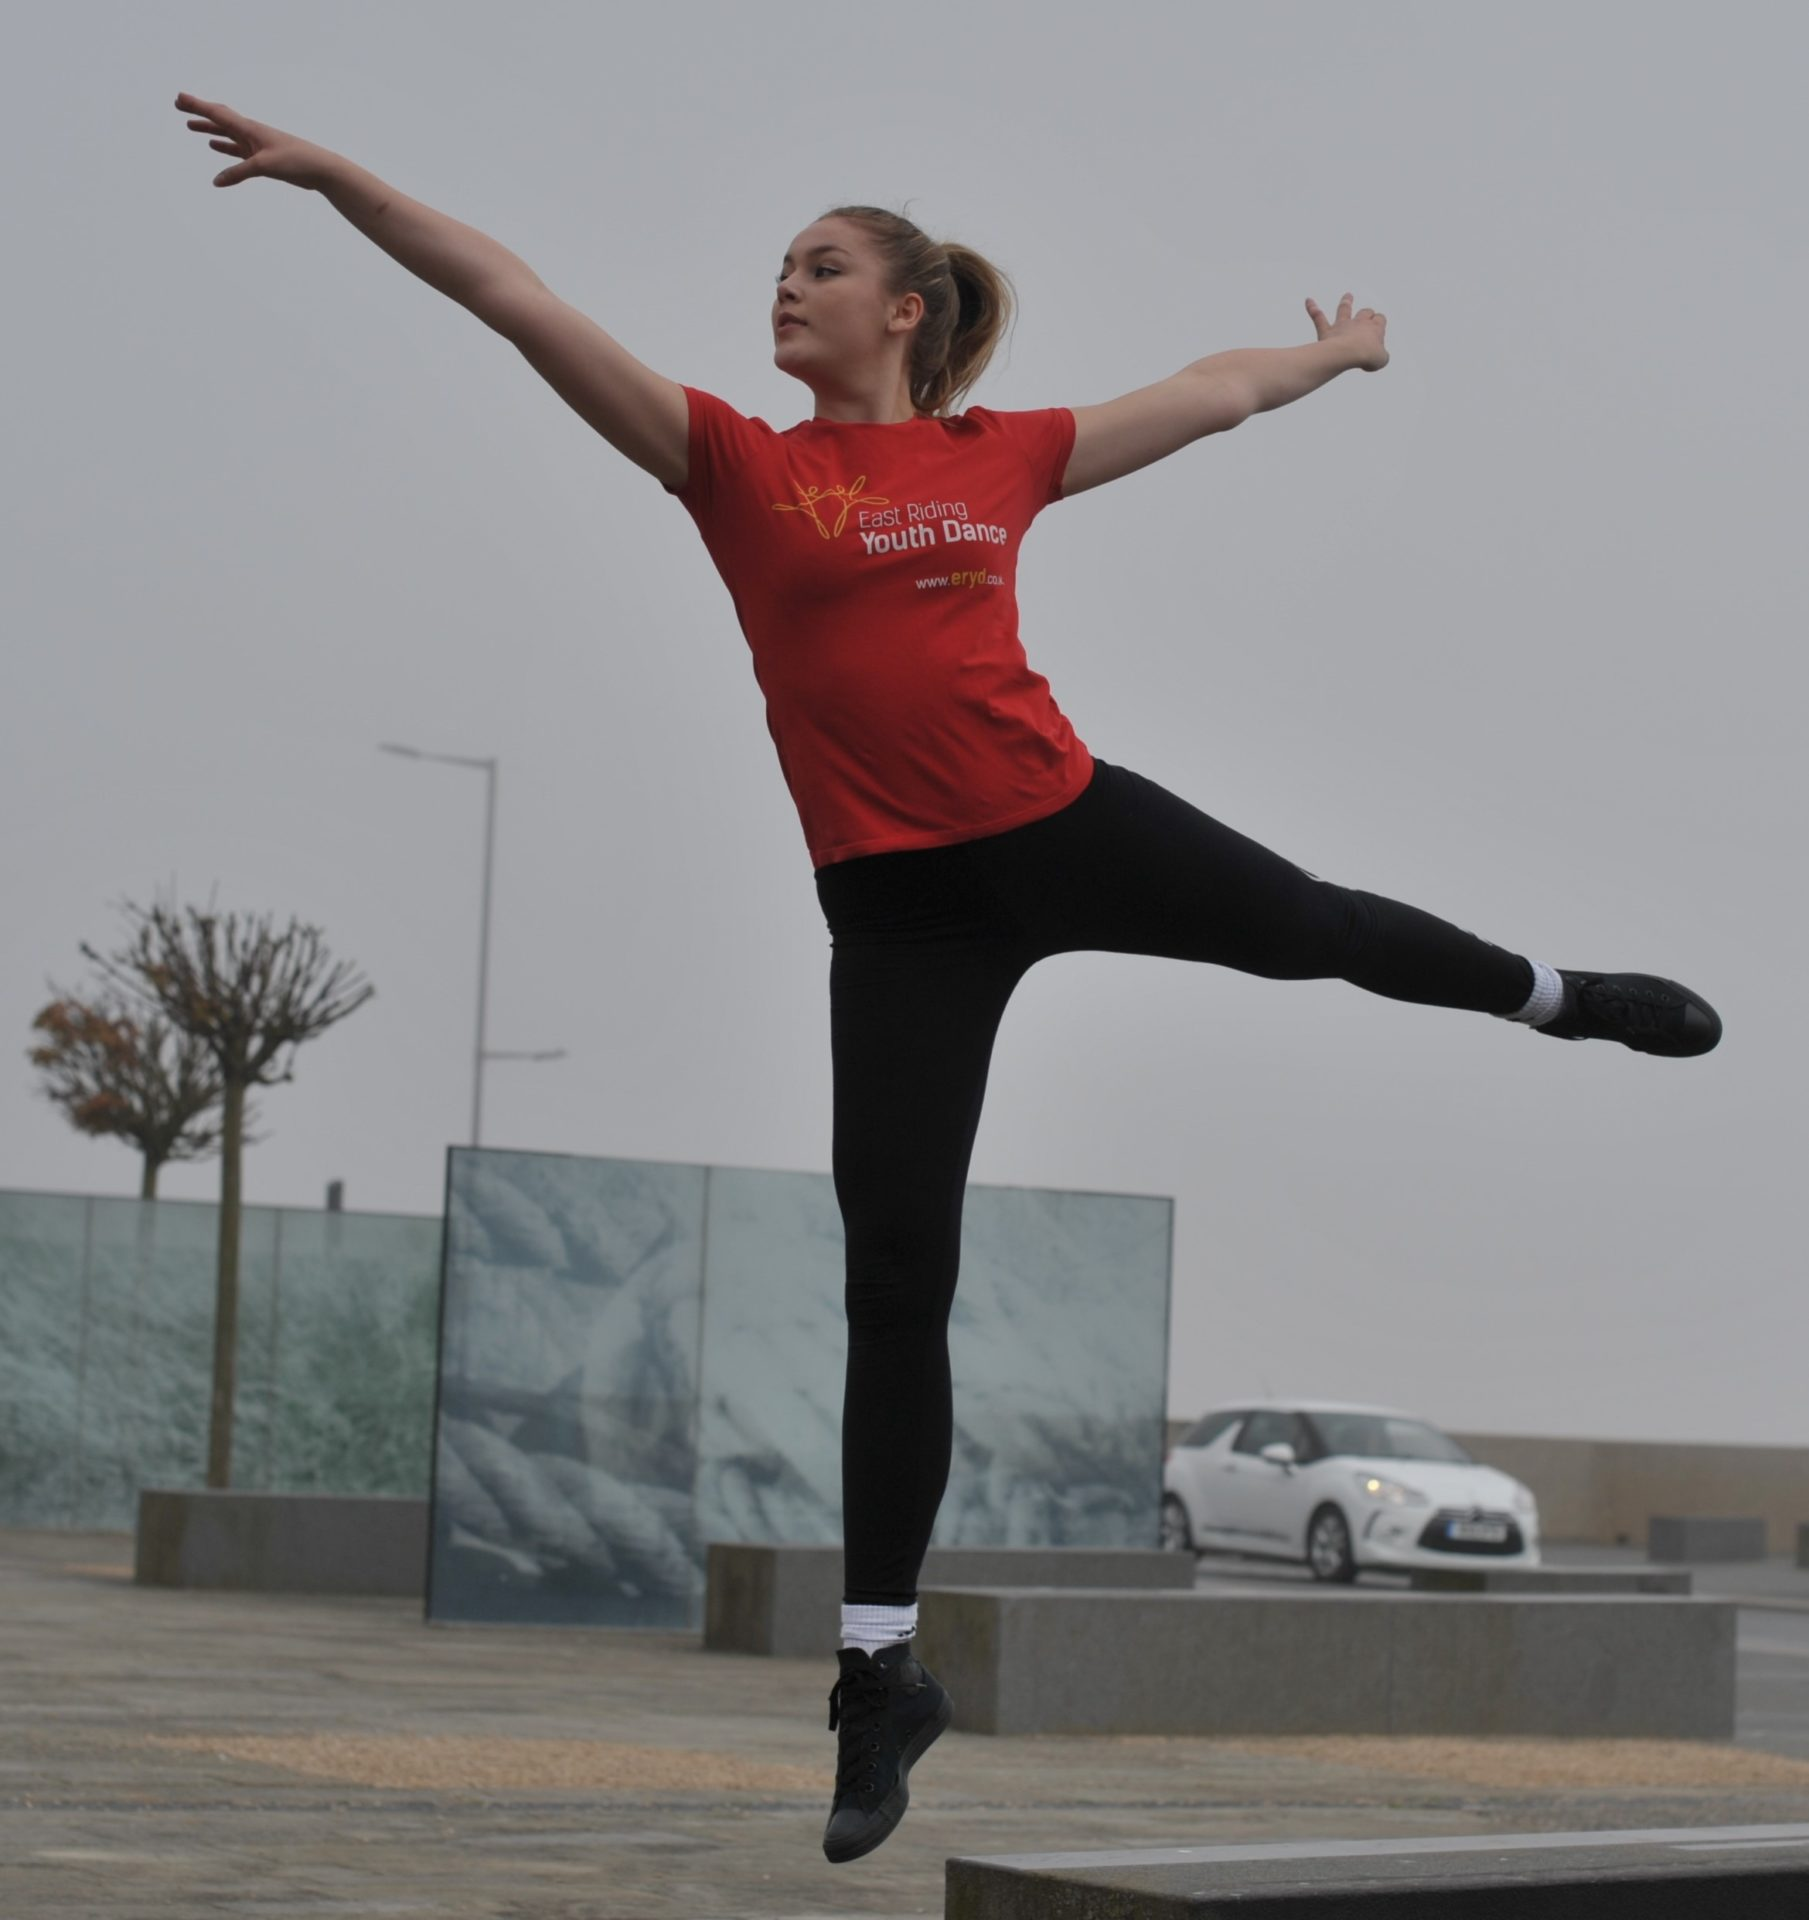 Dance Performance East Riding Youth Dance Case Study